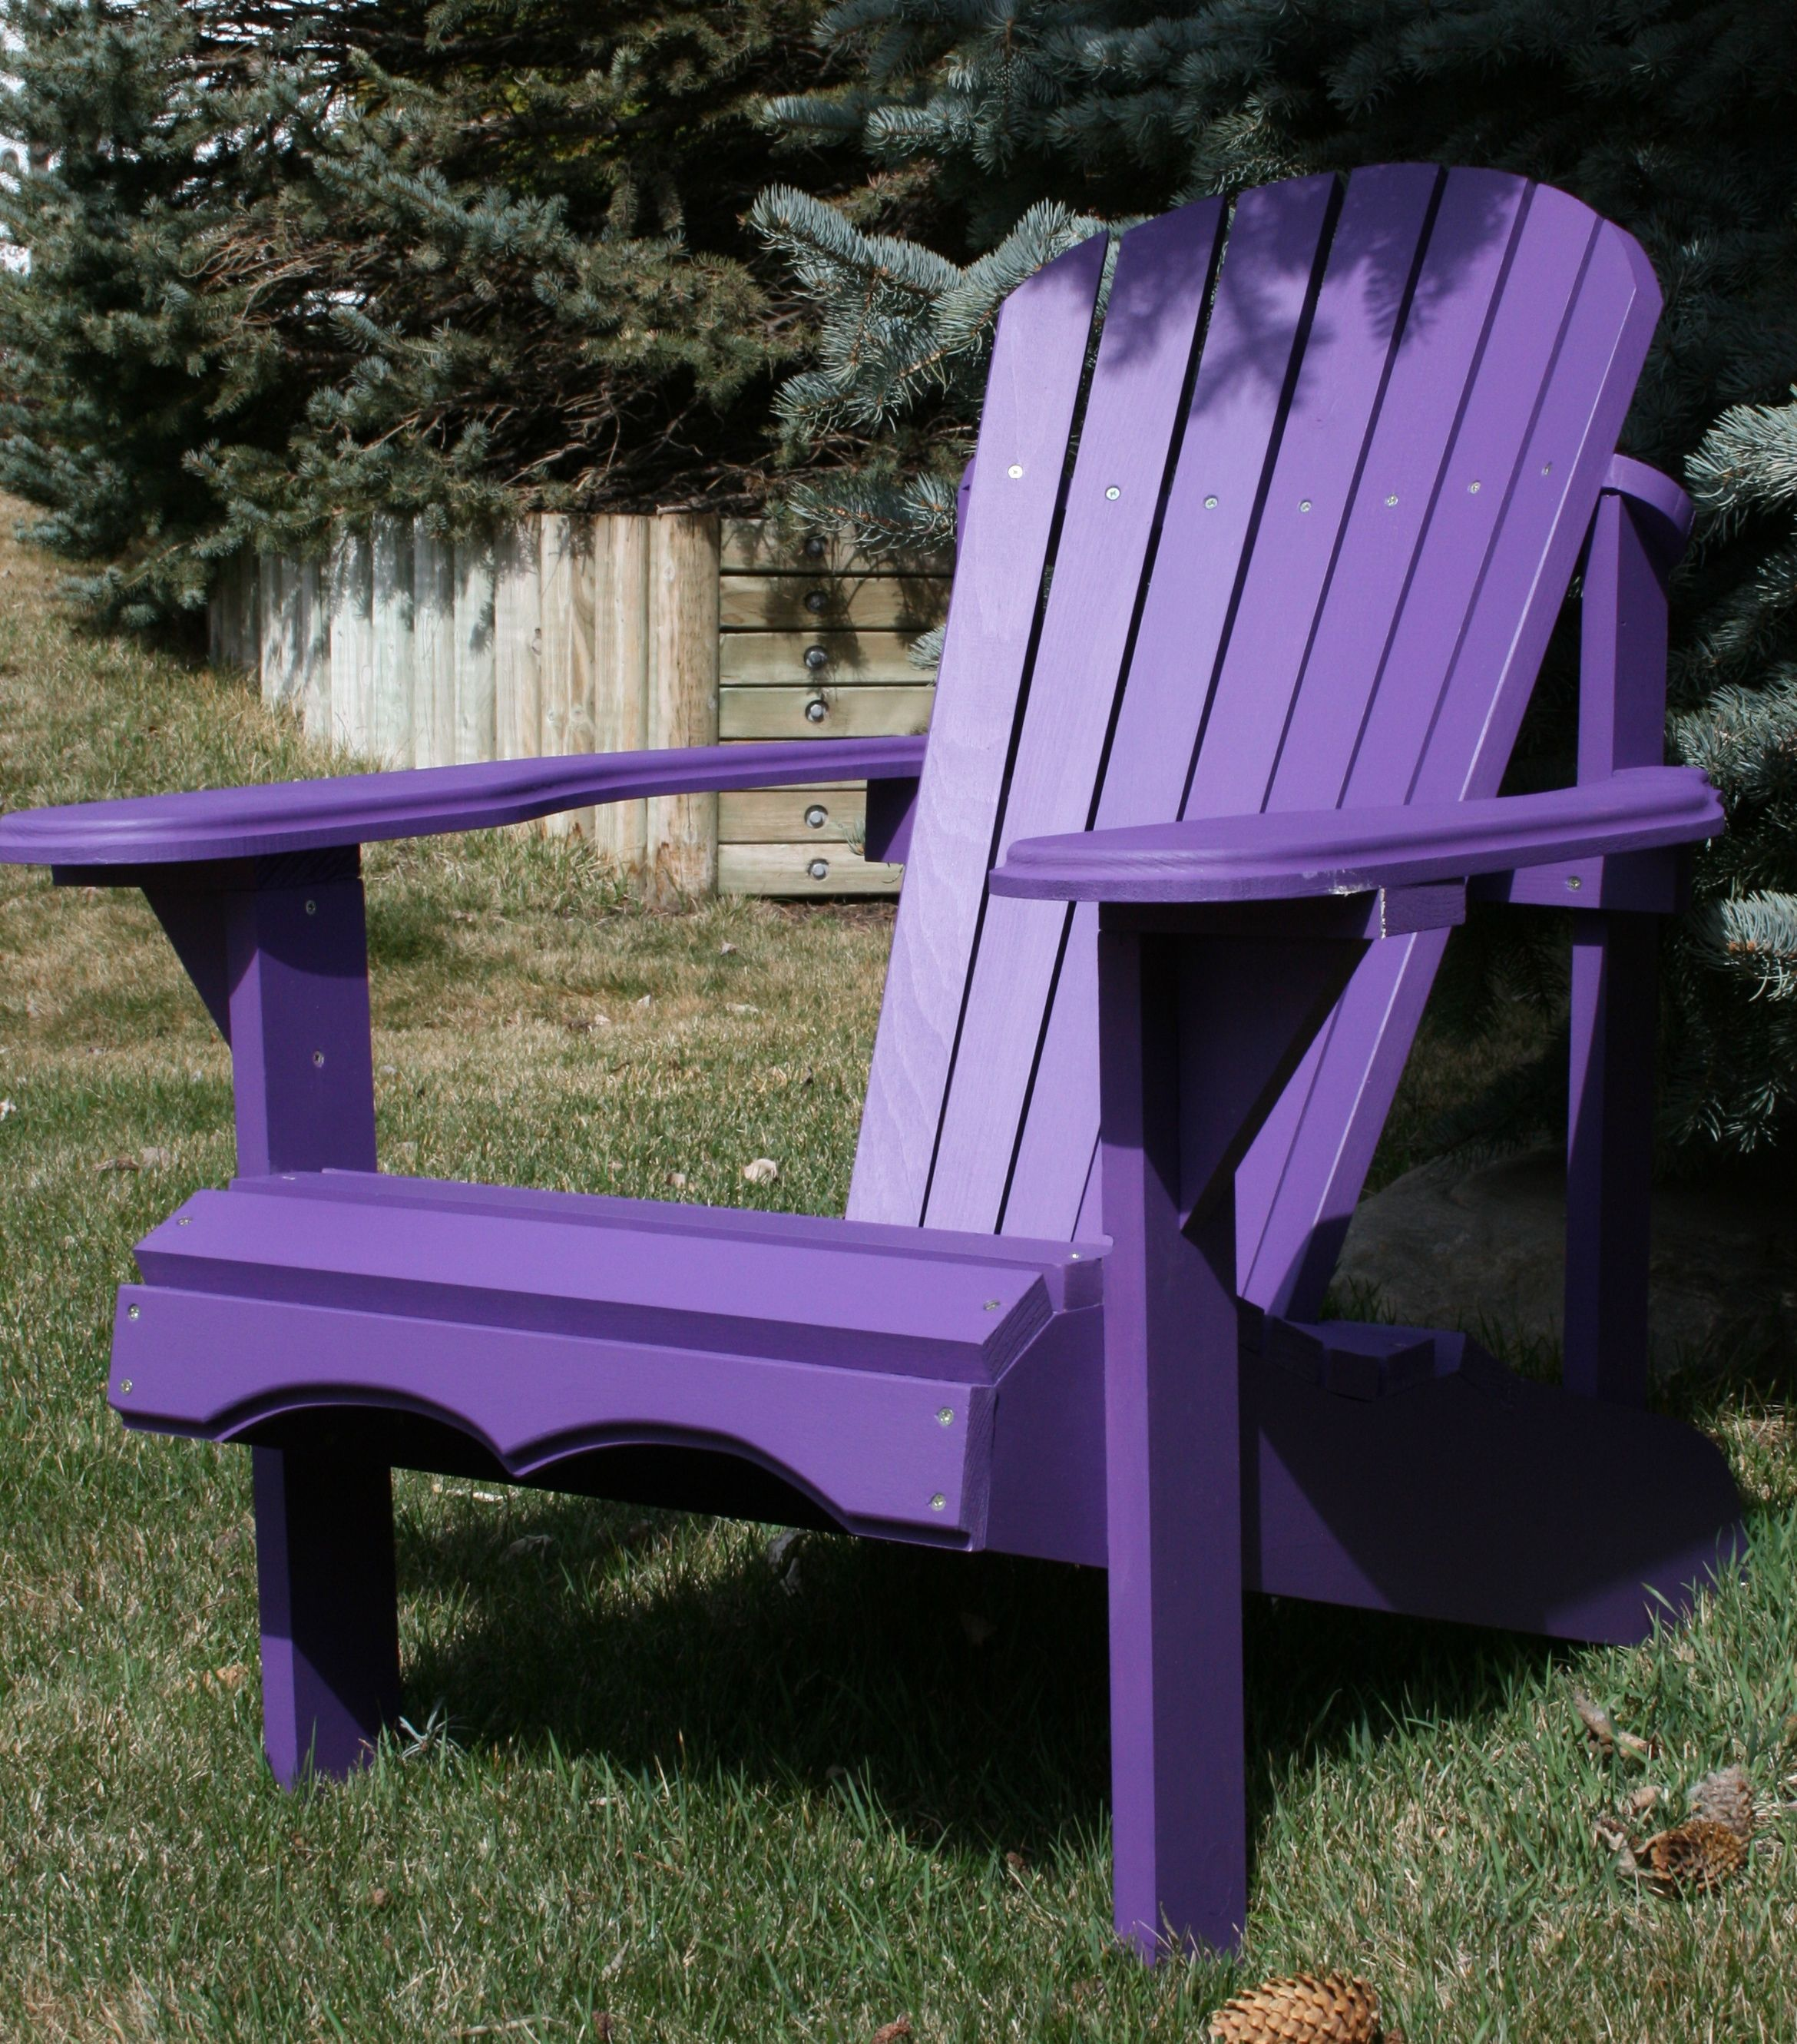 purple plastic adirondack chairs. Almost Time To Enjoy Morning Coffee In My Purple Adirondack Chair Plastic Chairs E